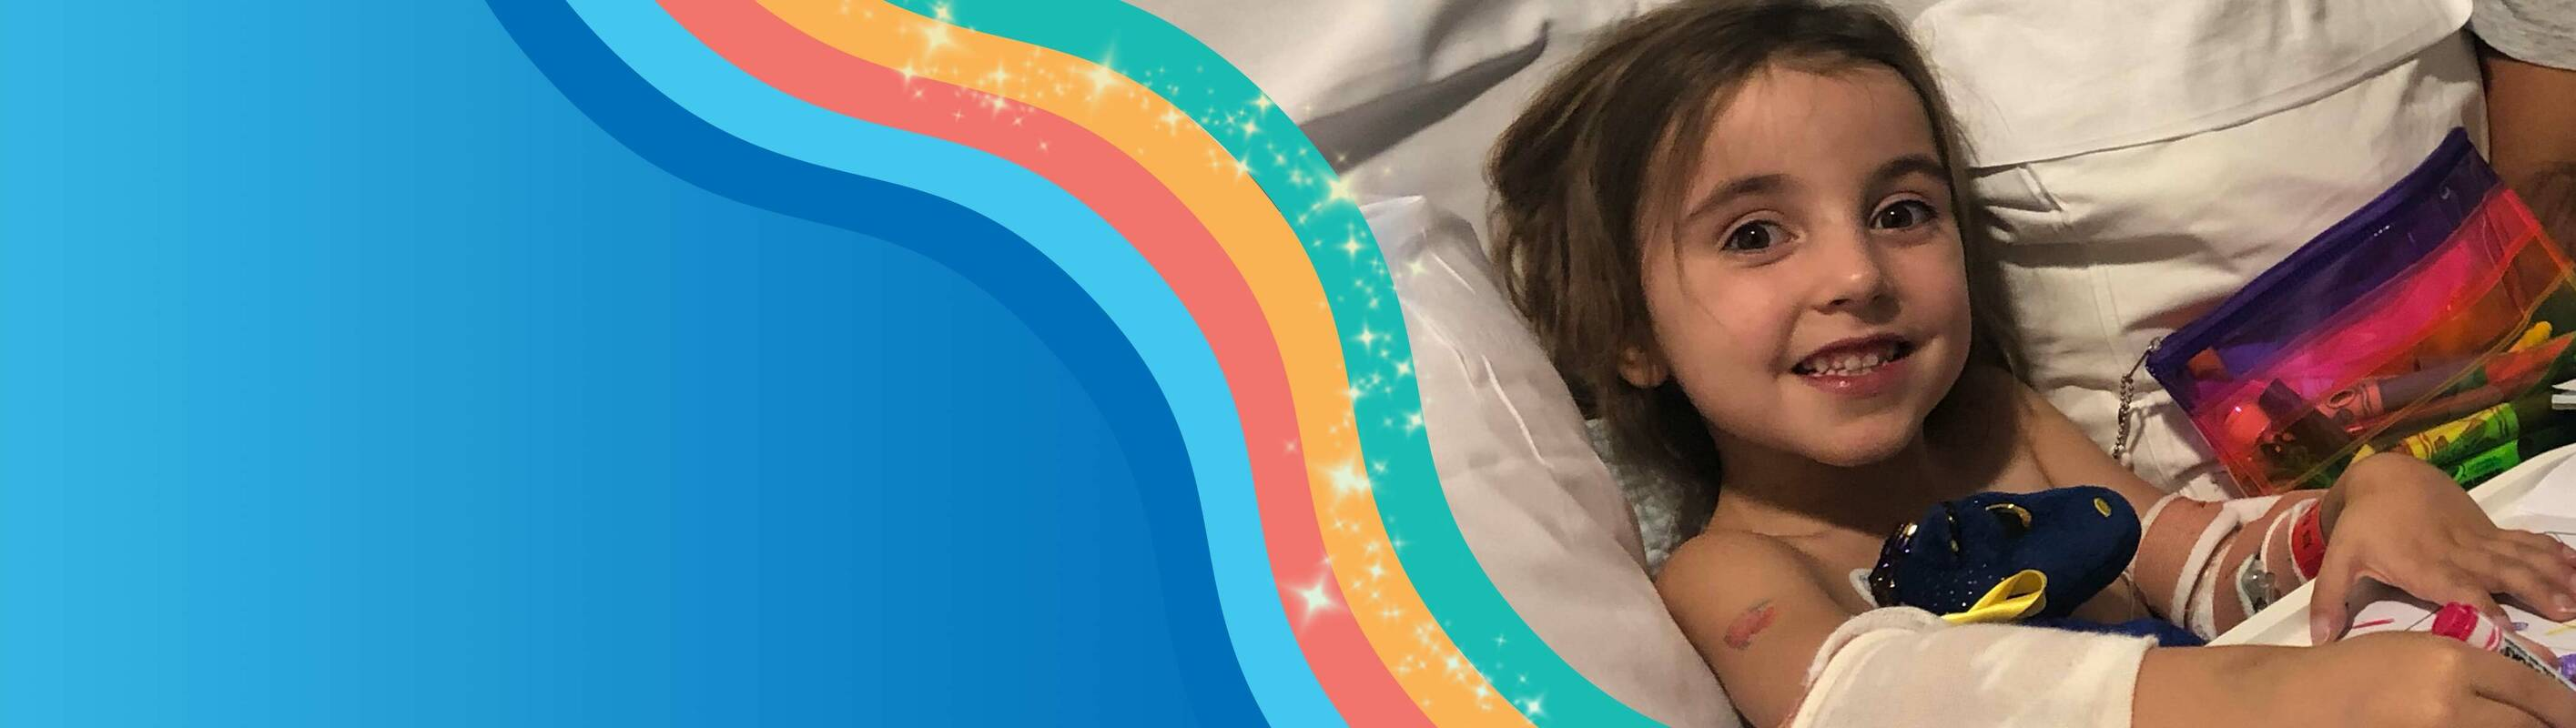 Make-A-Wish Australia wish kid Willow in a hospital bed